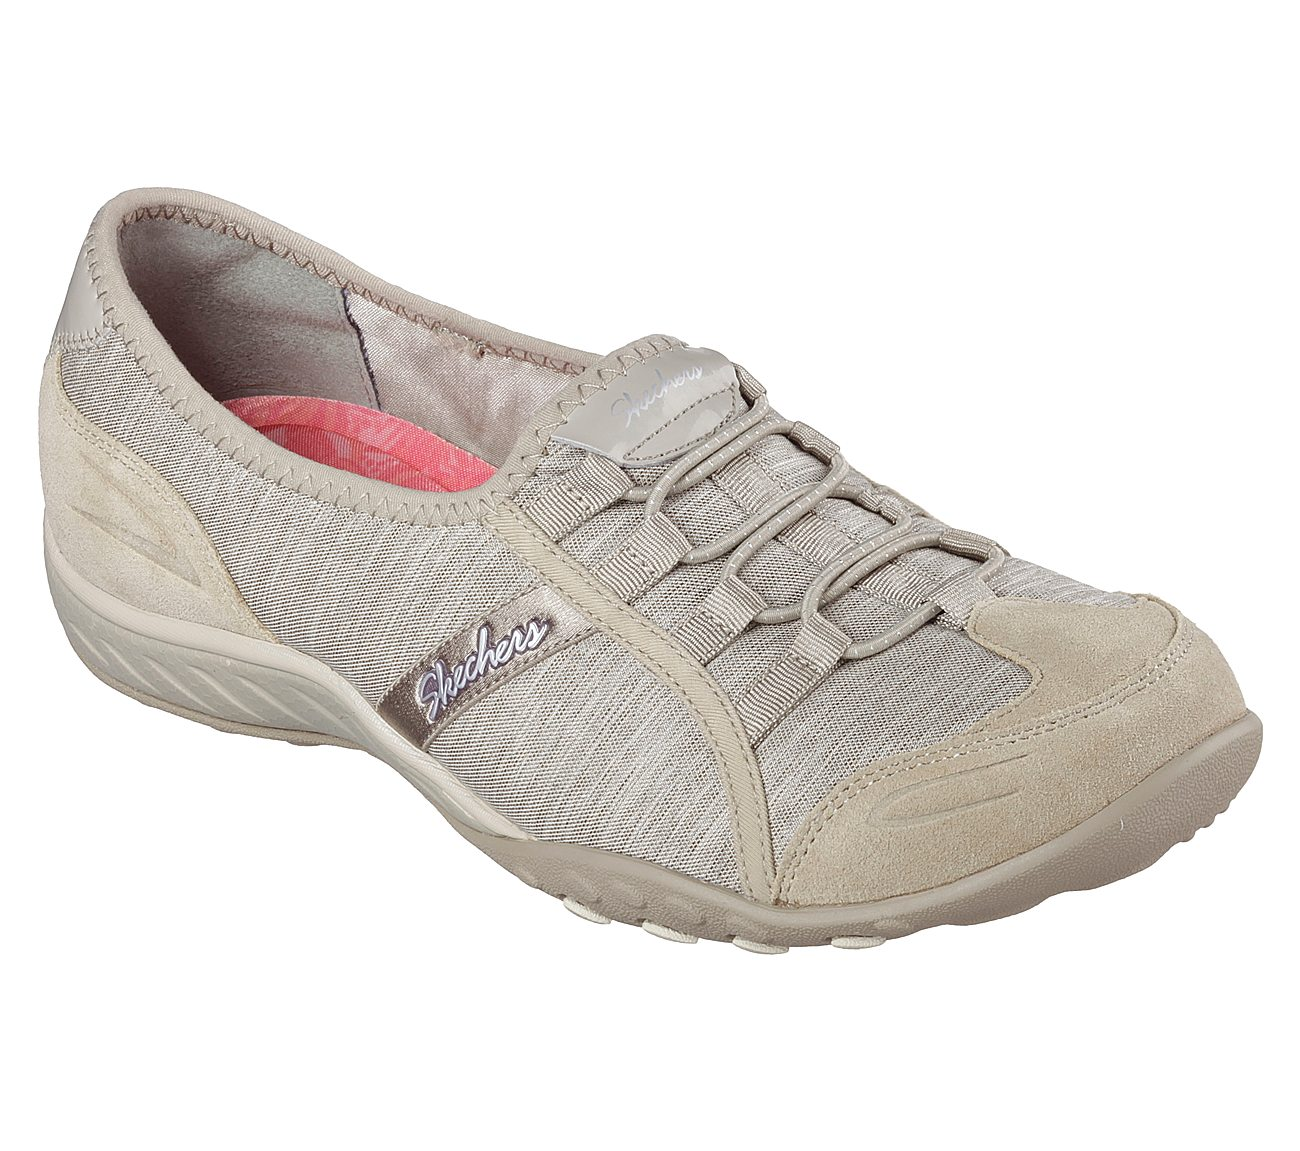 Skechers Relaxed Fit: Breathe Easy-Pretty Lady - Women's Size 6 - Taupe